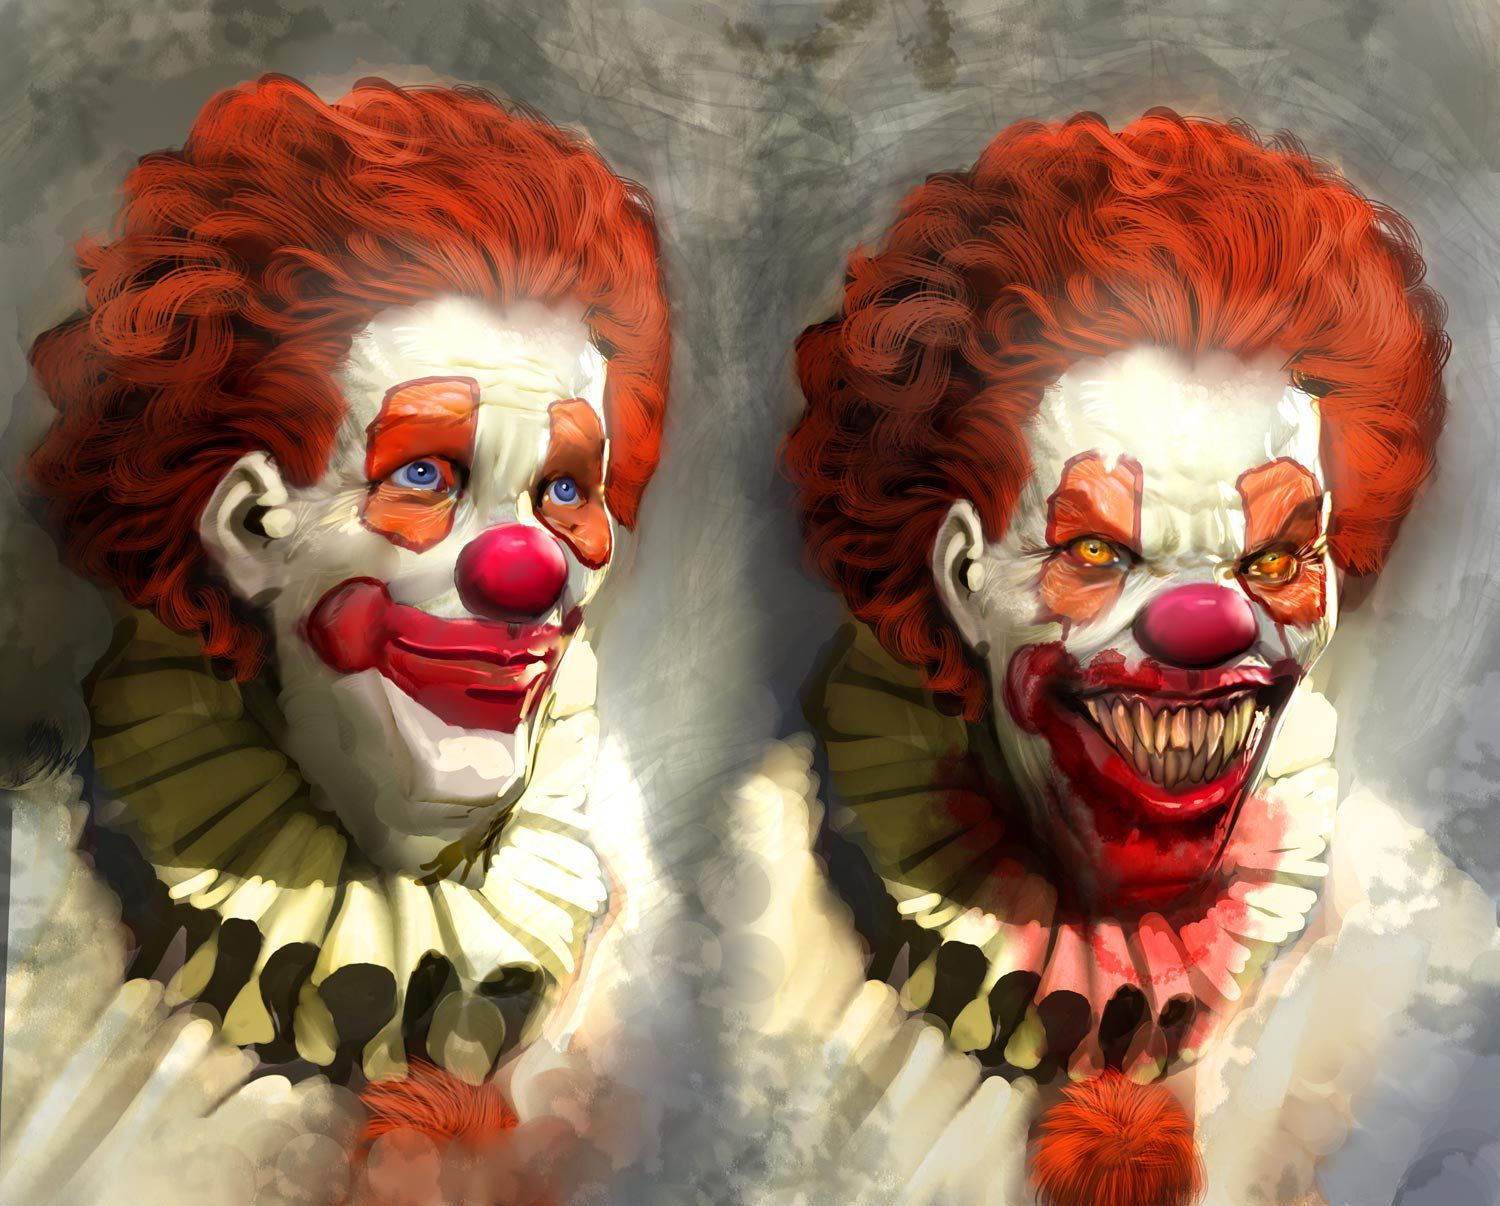 mr robert gray ol bob gray or pennywise the dancing clown mr robert gray ol bob gray or pennywise the dancing clown